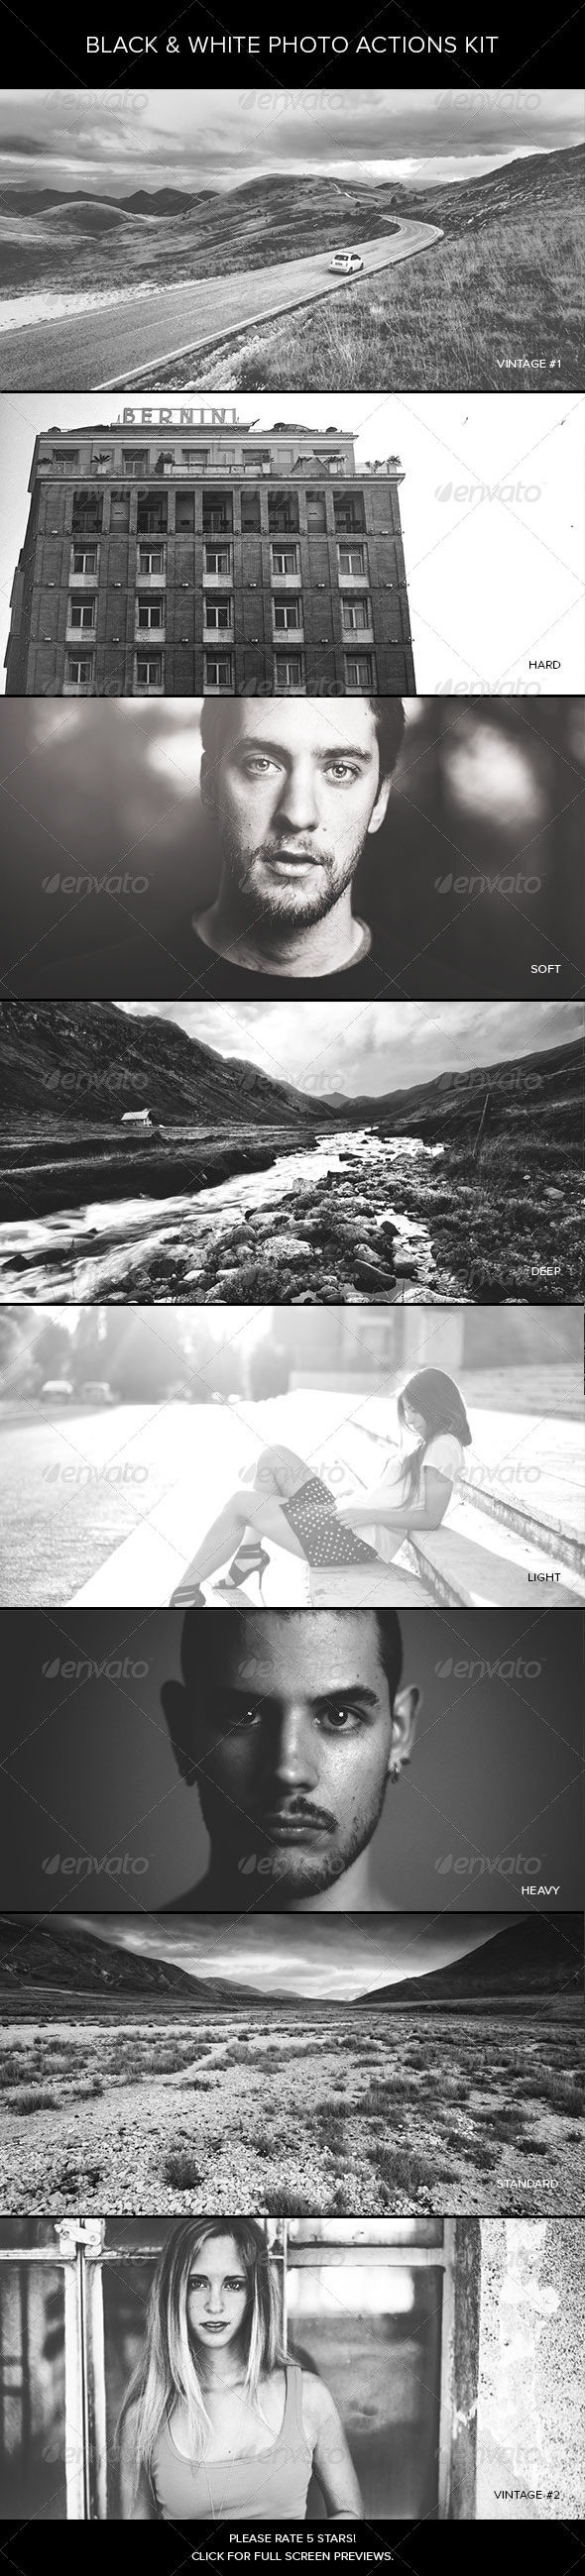 GraphicRiver Black & White Photo Actions Kit 5557161